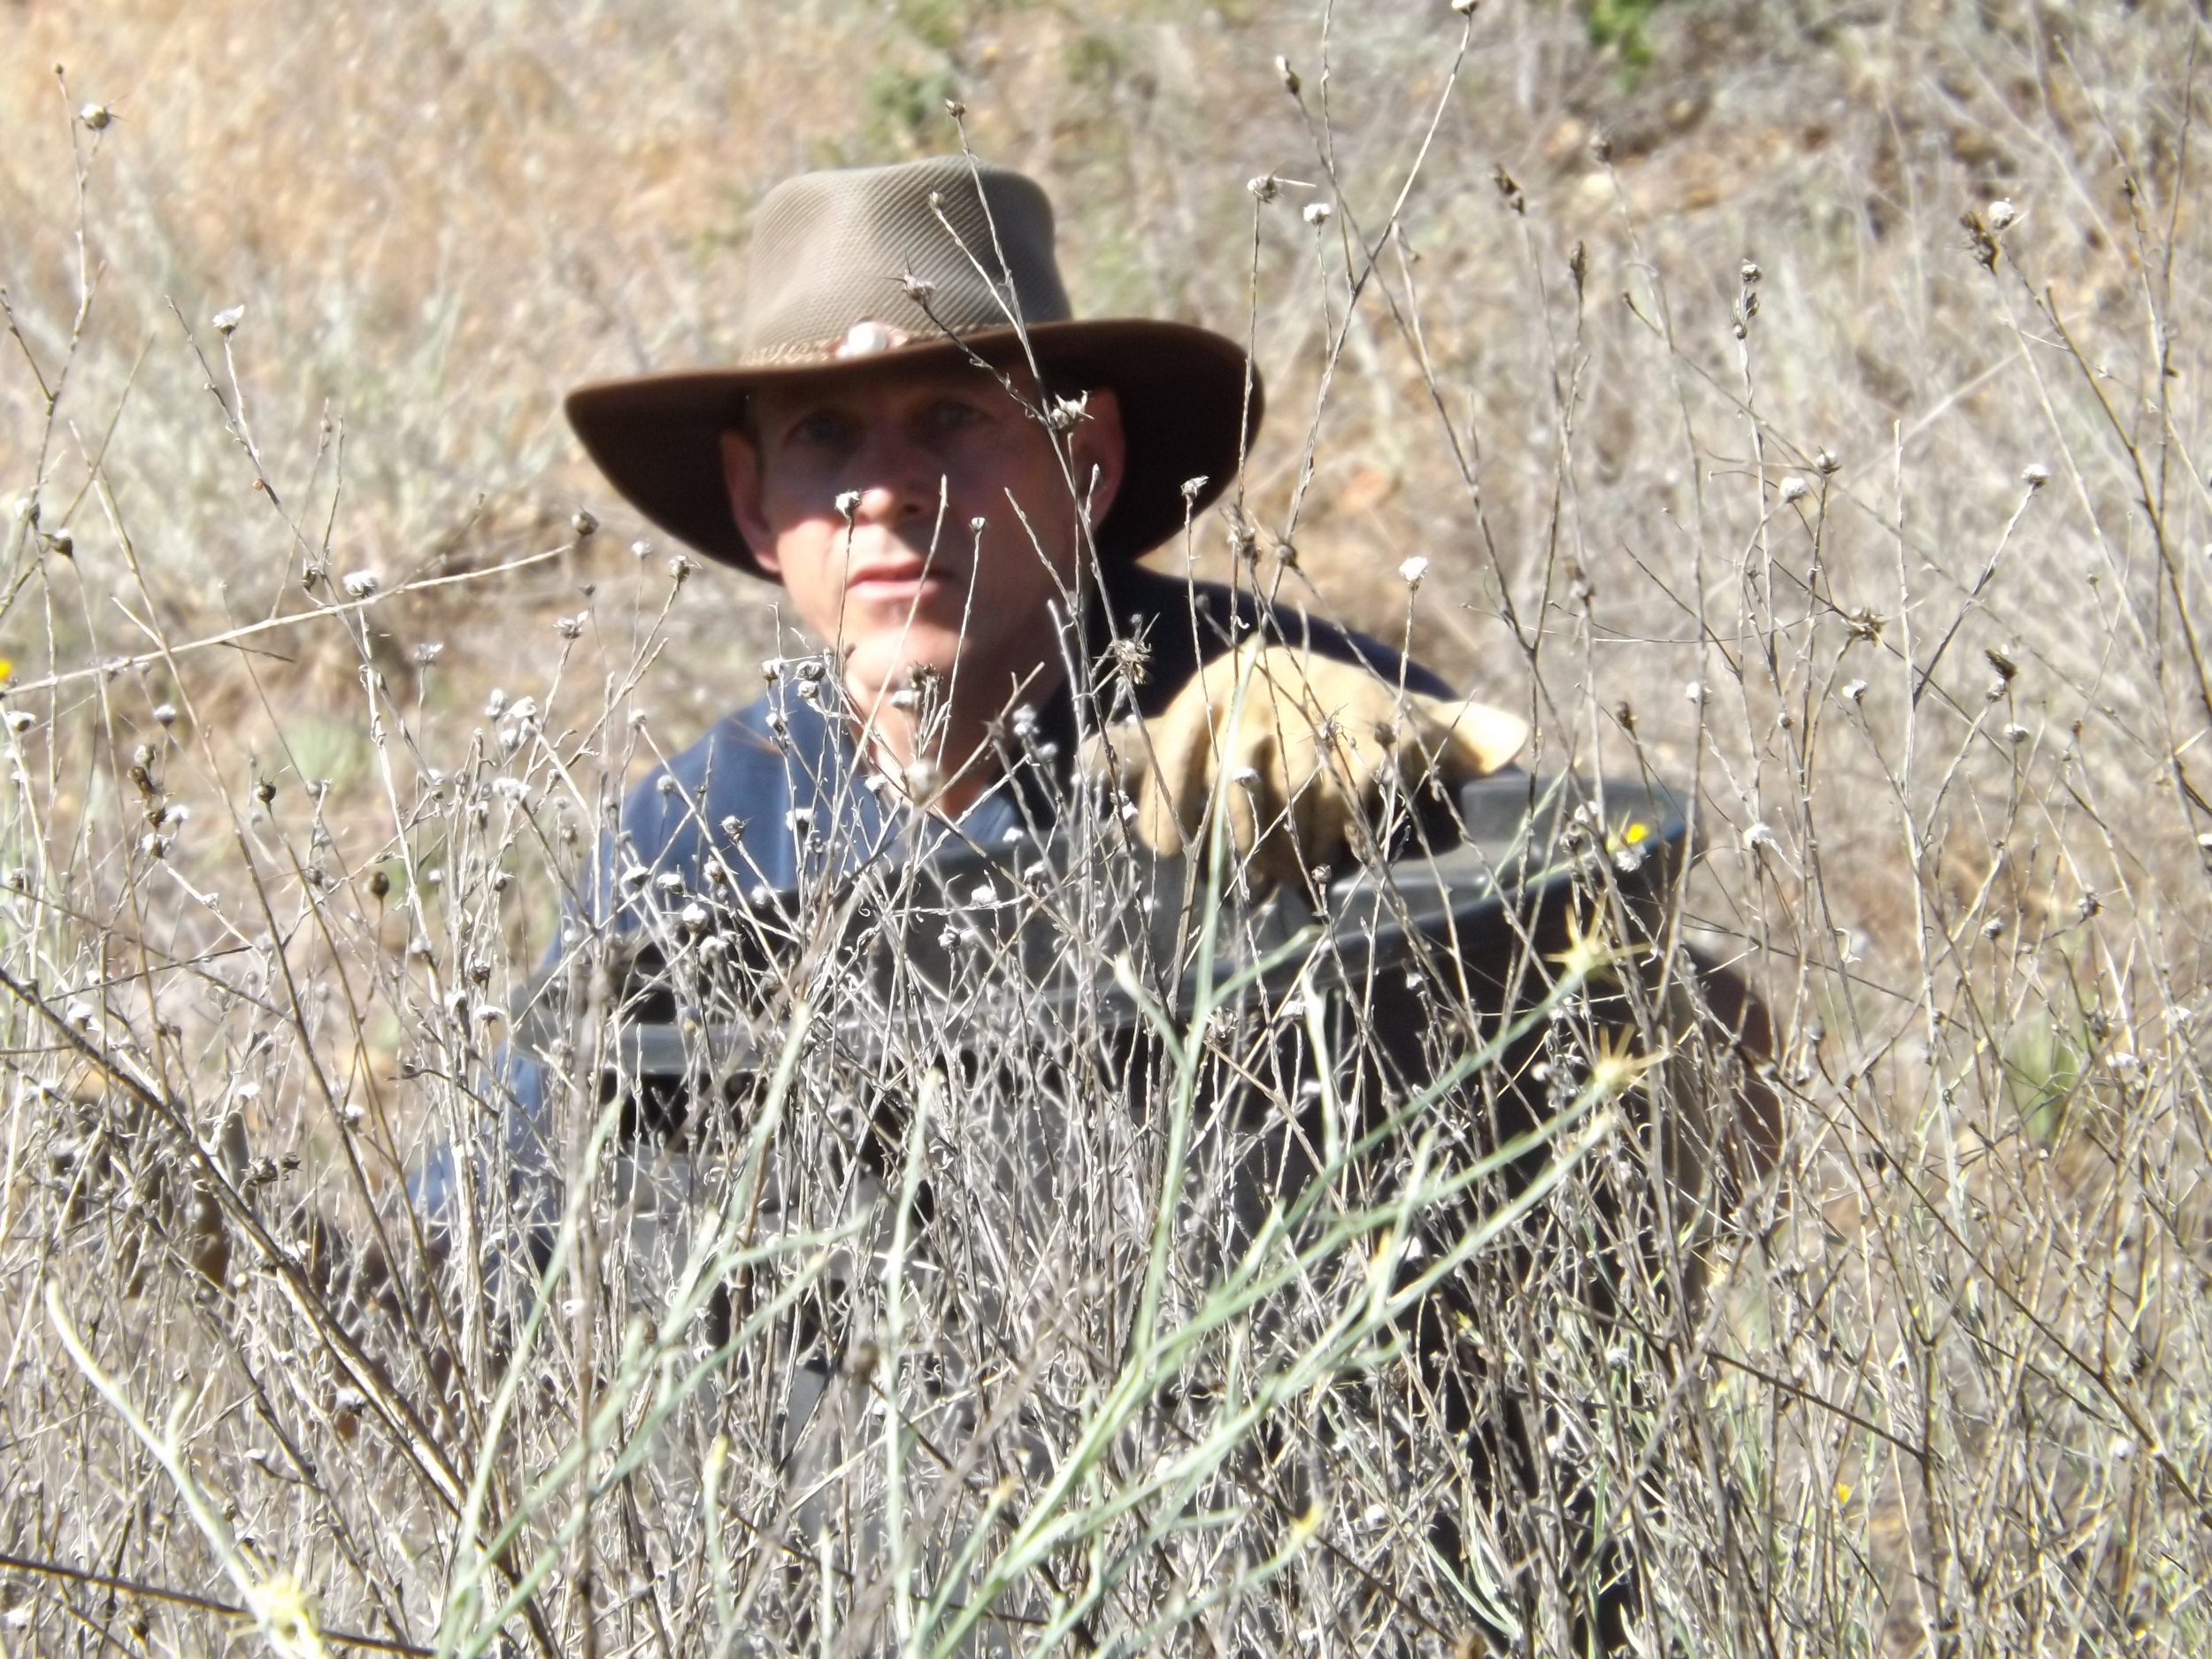 DUSTTIN PAREN arrived early and tackled the Yellow Starthistle removal with gusto. (Photo: Leslie Bridger, 2012)